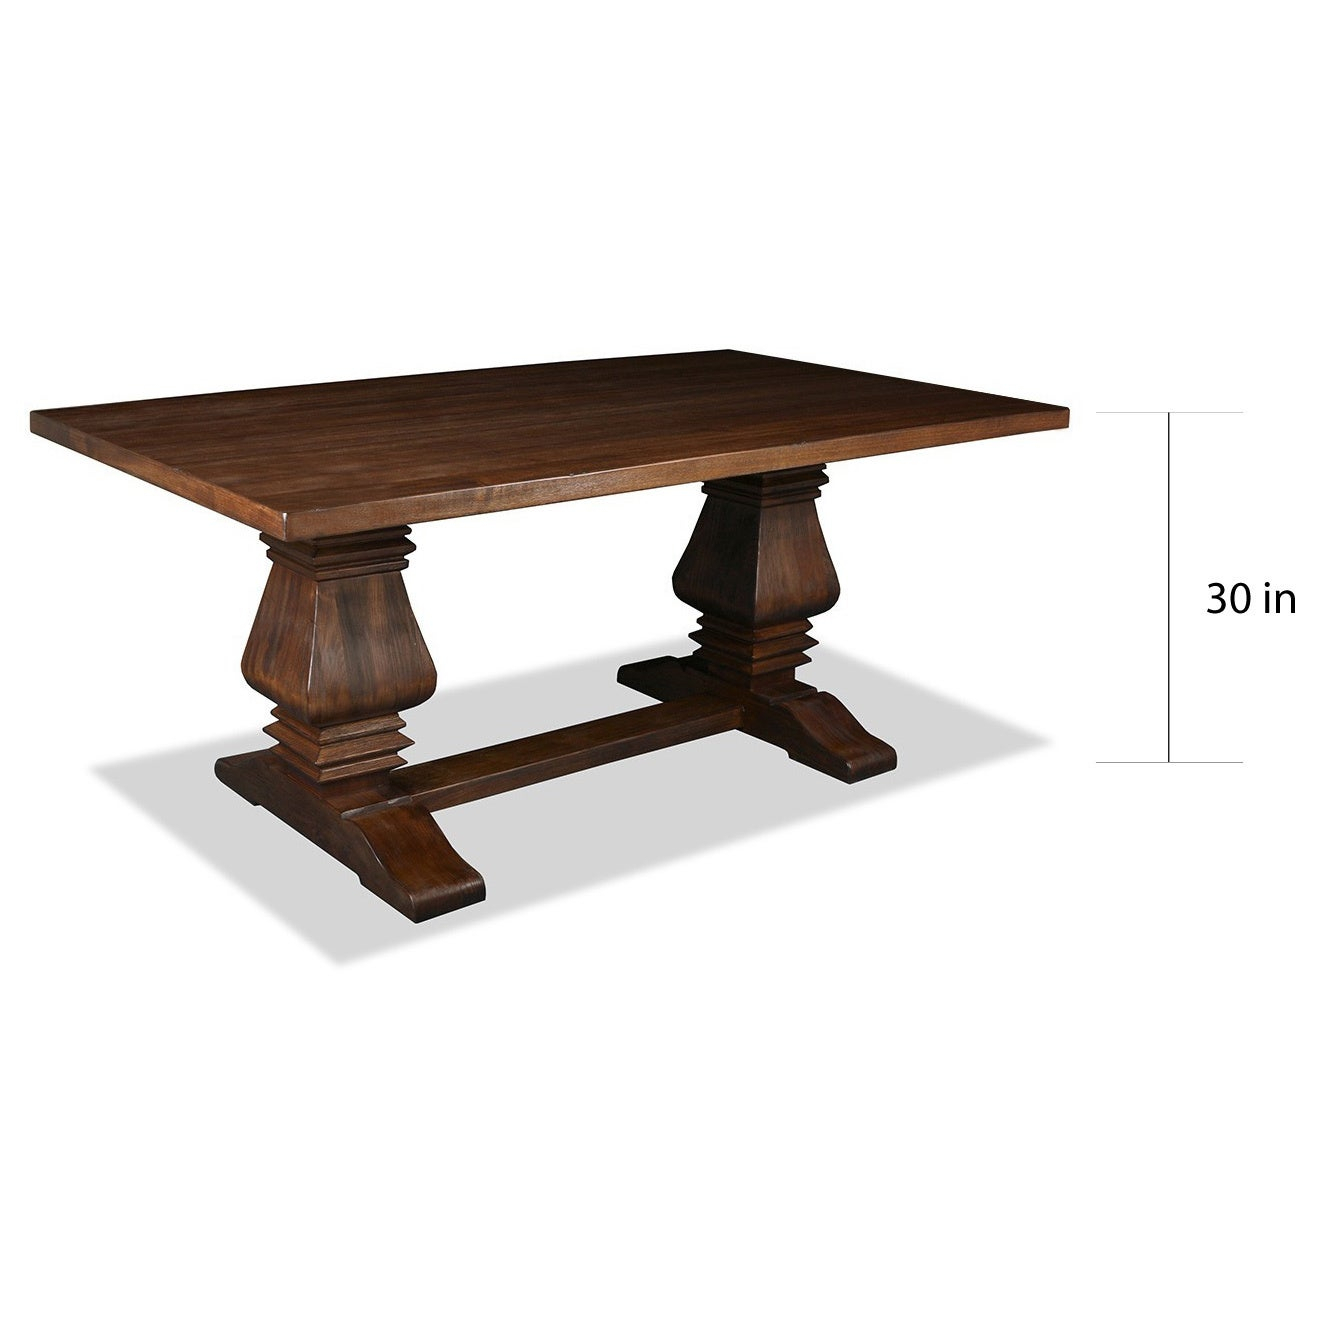 Top Product Reviews For Toscana Reclaimed Wood Rectangular Pertaining To 2017 Tuscan Chestnut Toscana Dining Tables (View 23 of 25)